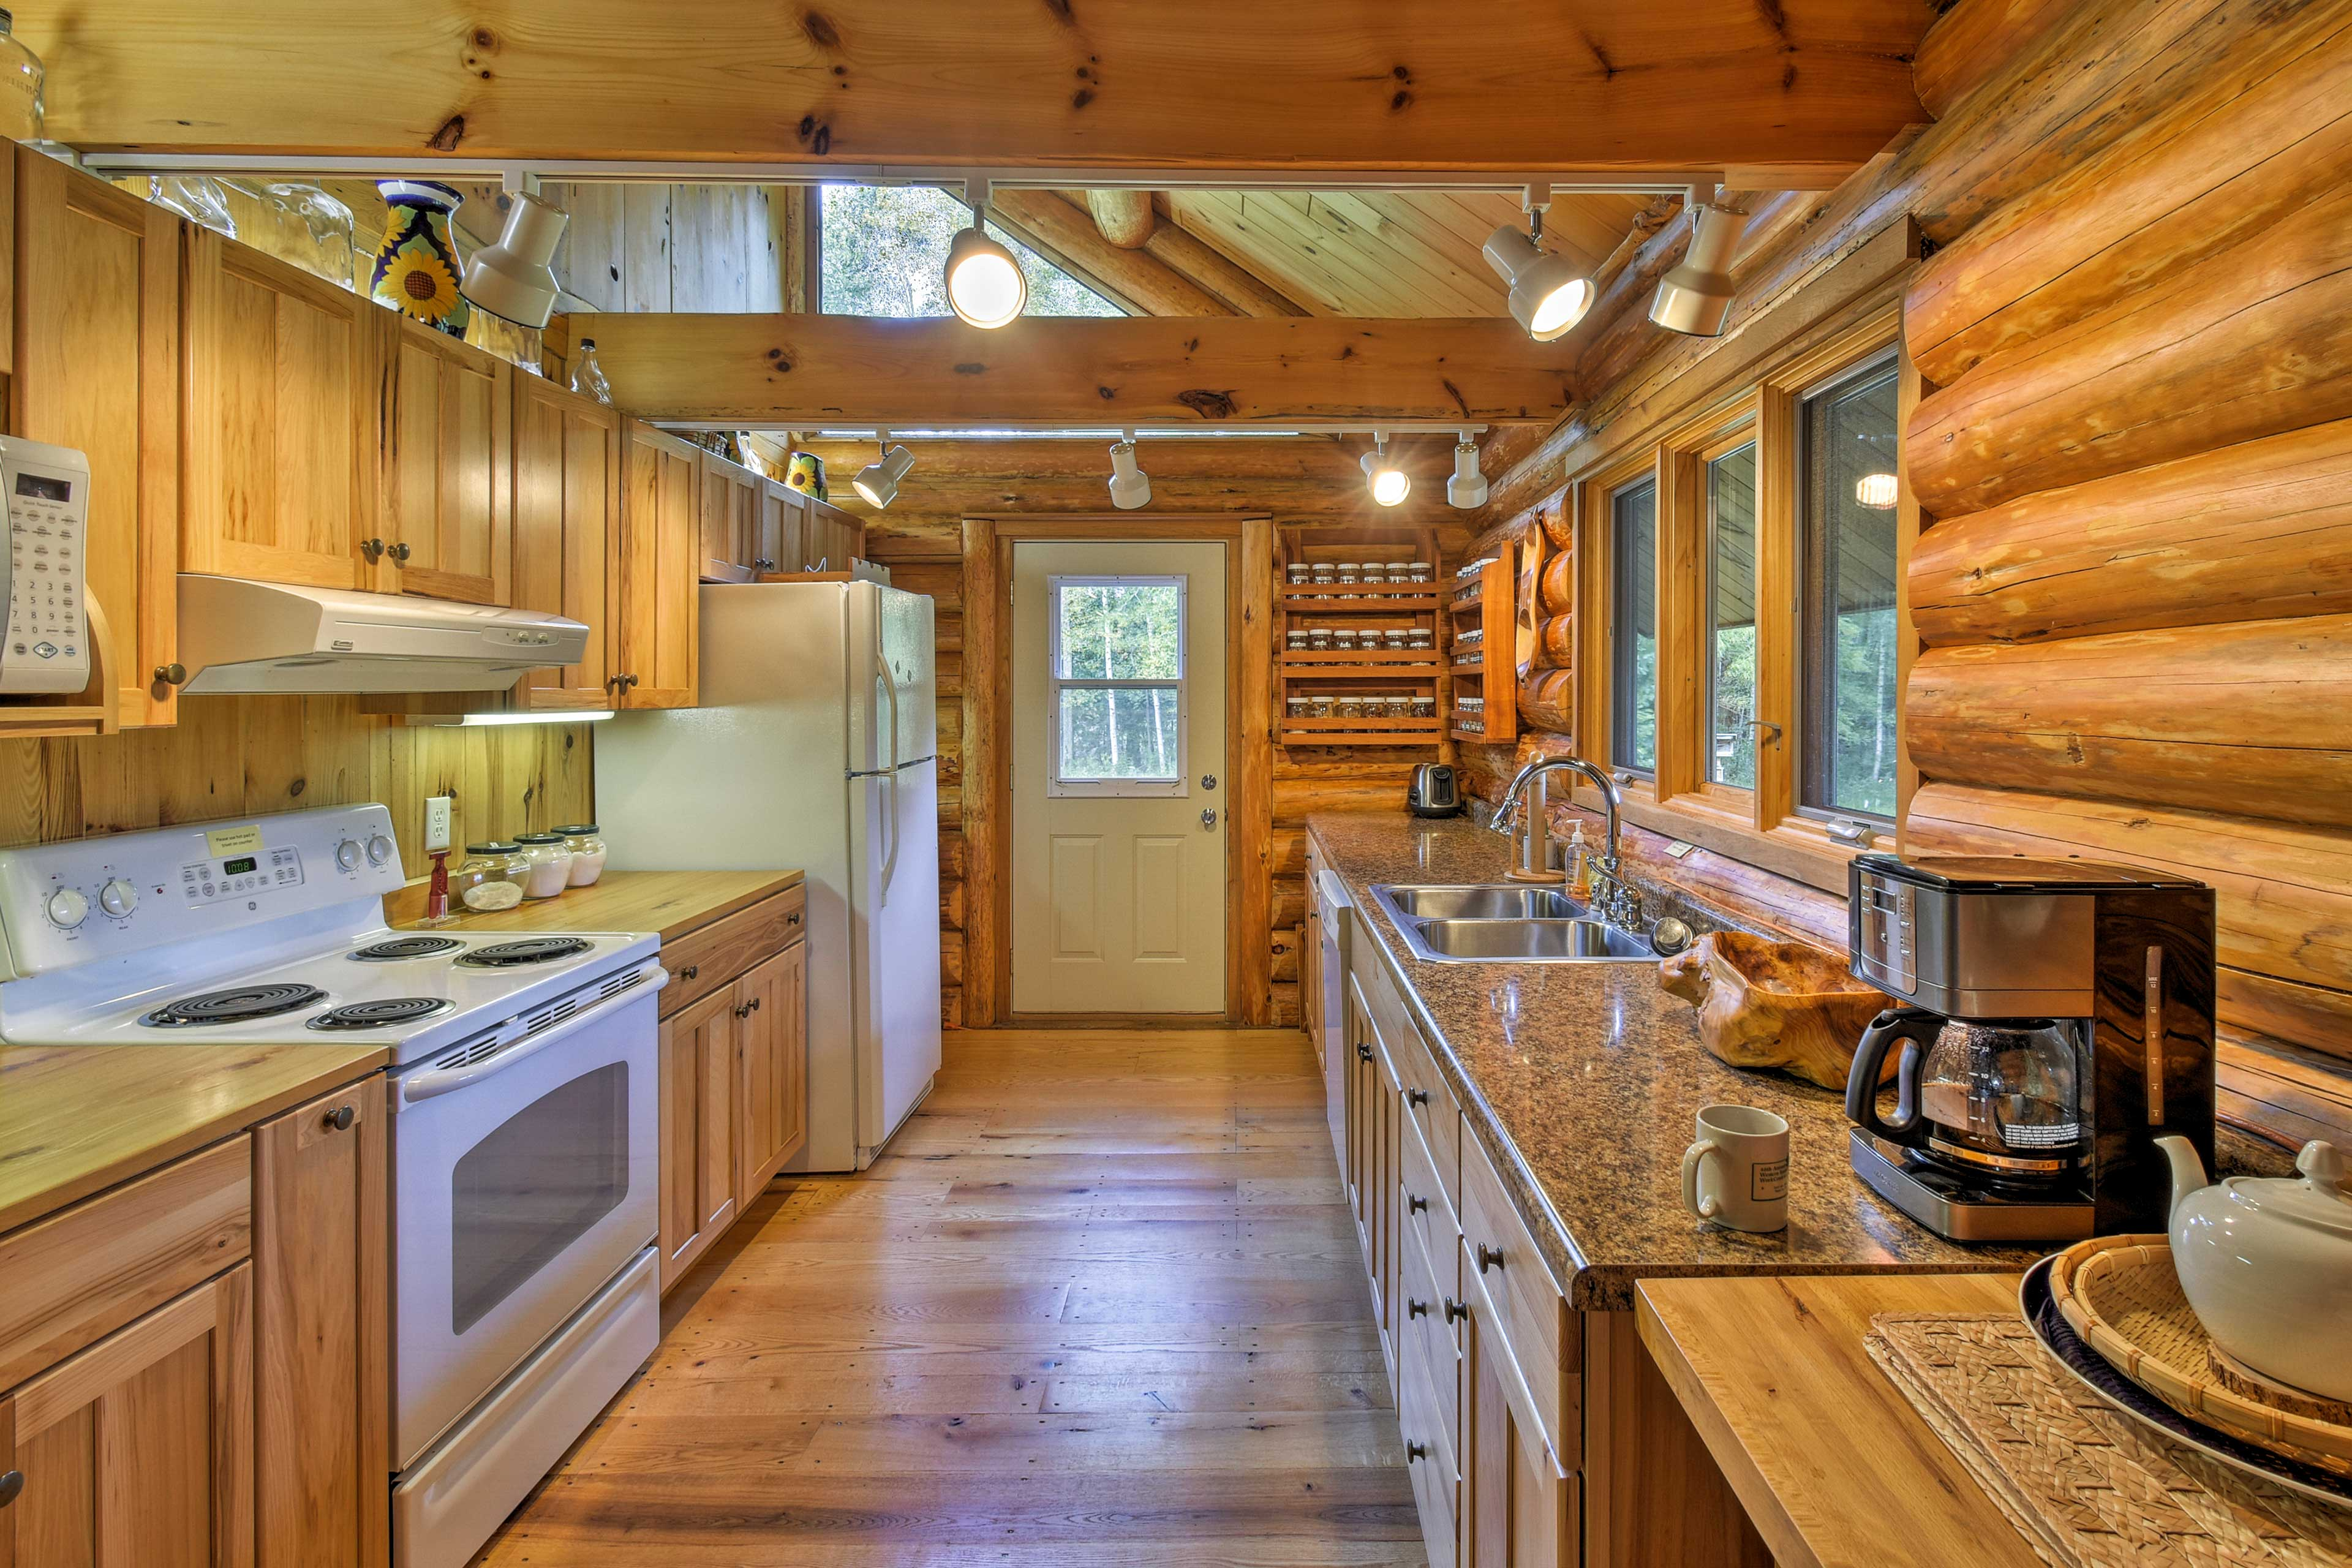 Kitchen | Fully Equipped | Spices Provided